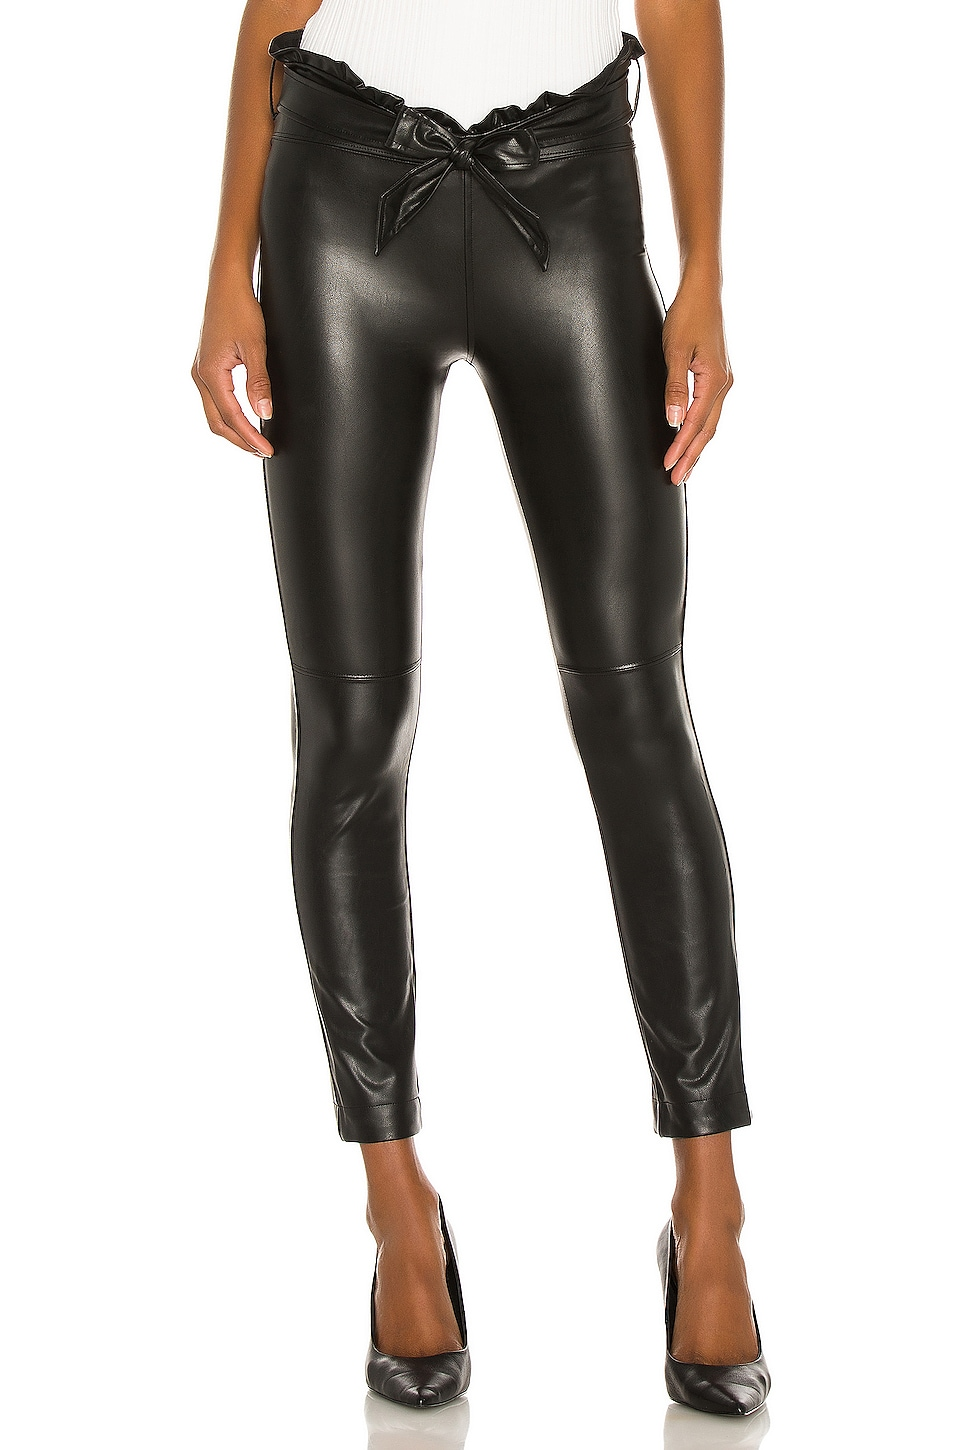 David Lerner High Rise Legging in Classic Black